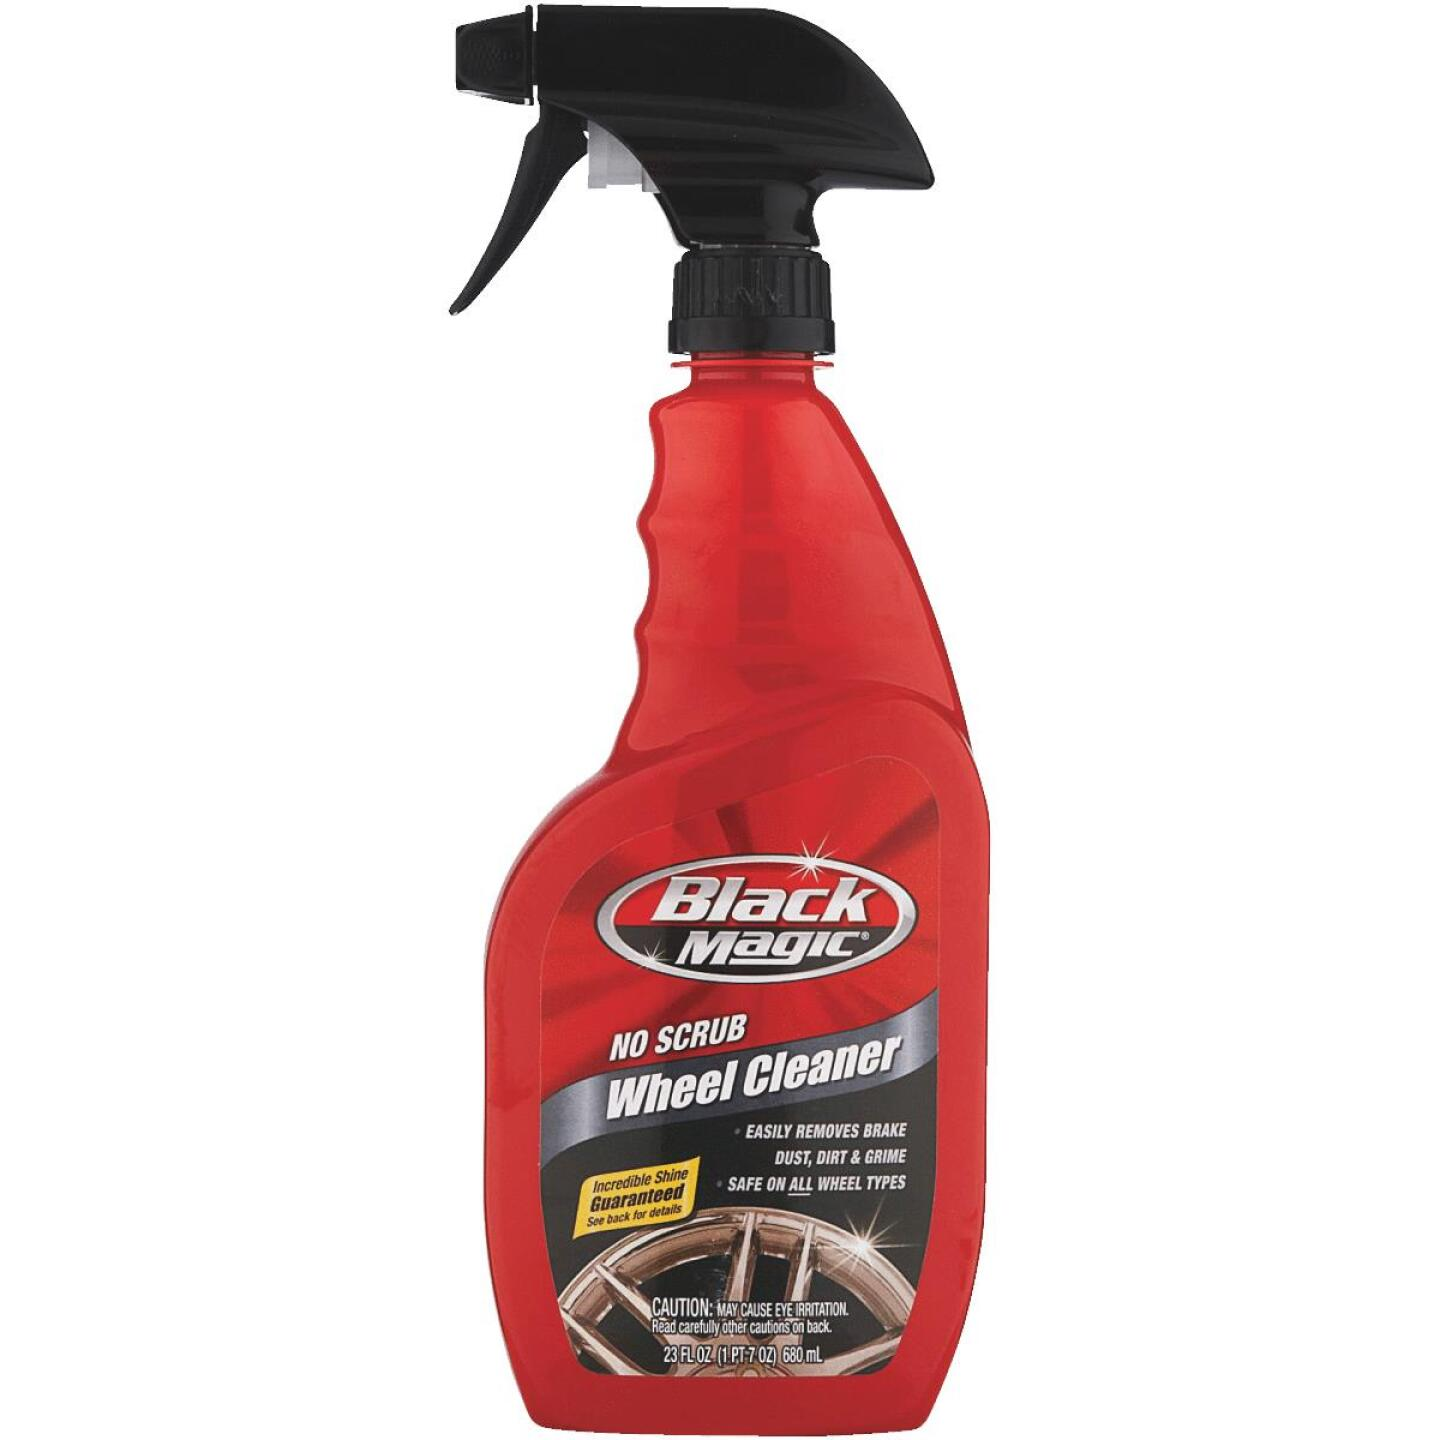 Black Magic 23 oz Trigger Spray Wheel Cleaner Image 1